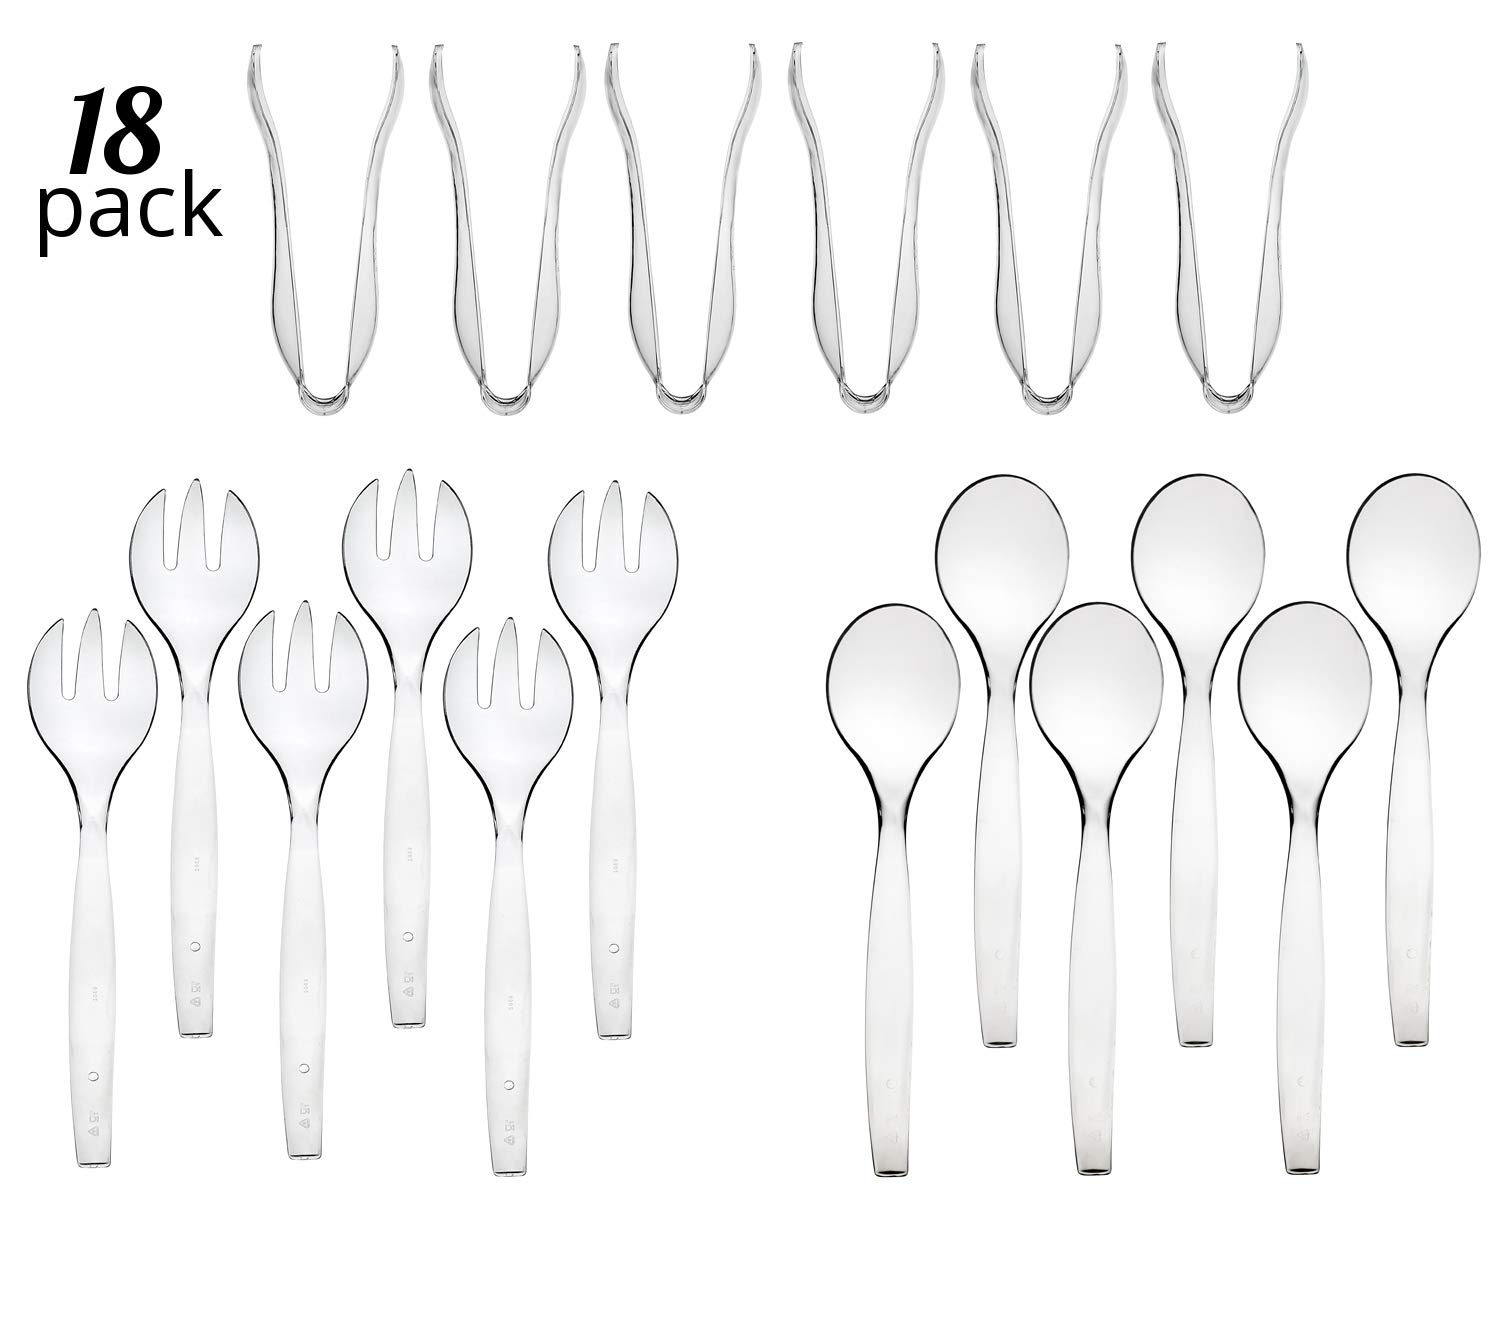 Disposable Serving Utensils, Plastic Crystal Clear Serving 10'' Spoons 10'' Forks & 6'' Tongs 6 Of Each, Pack of 18. by Pro Dispose